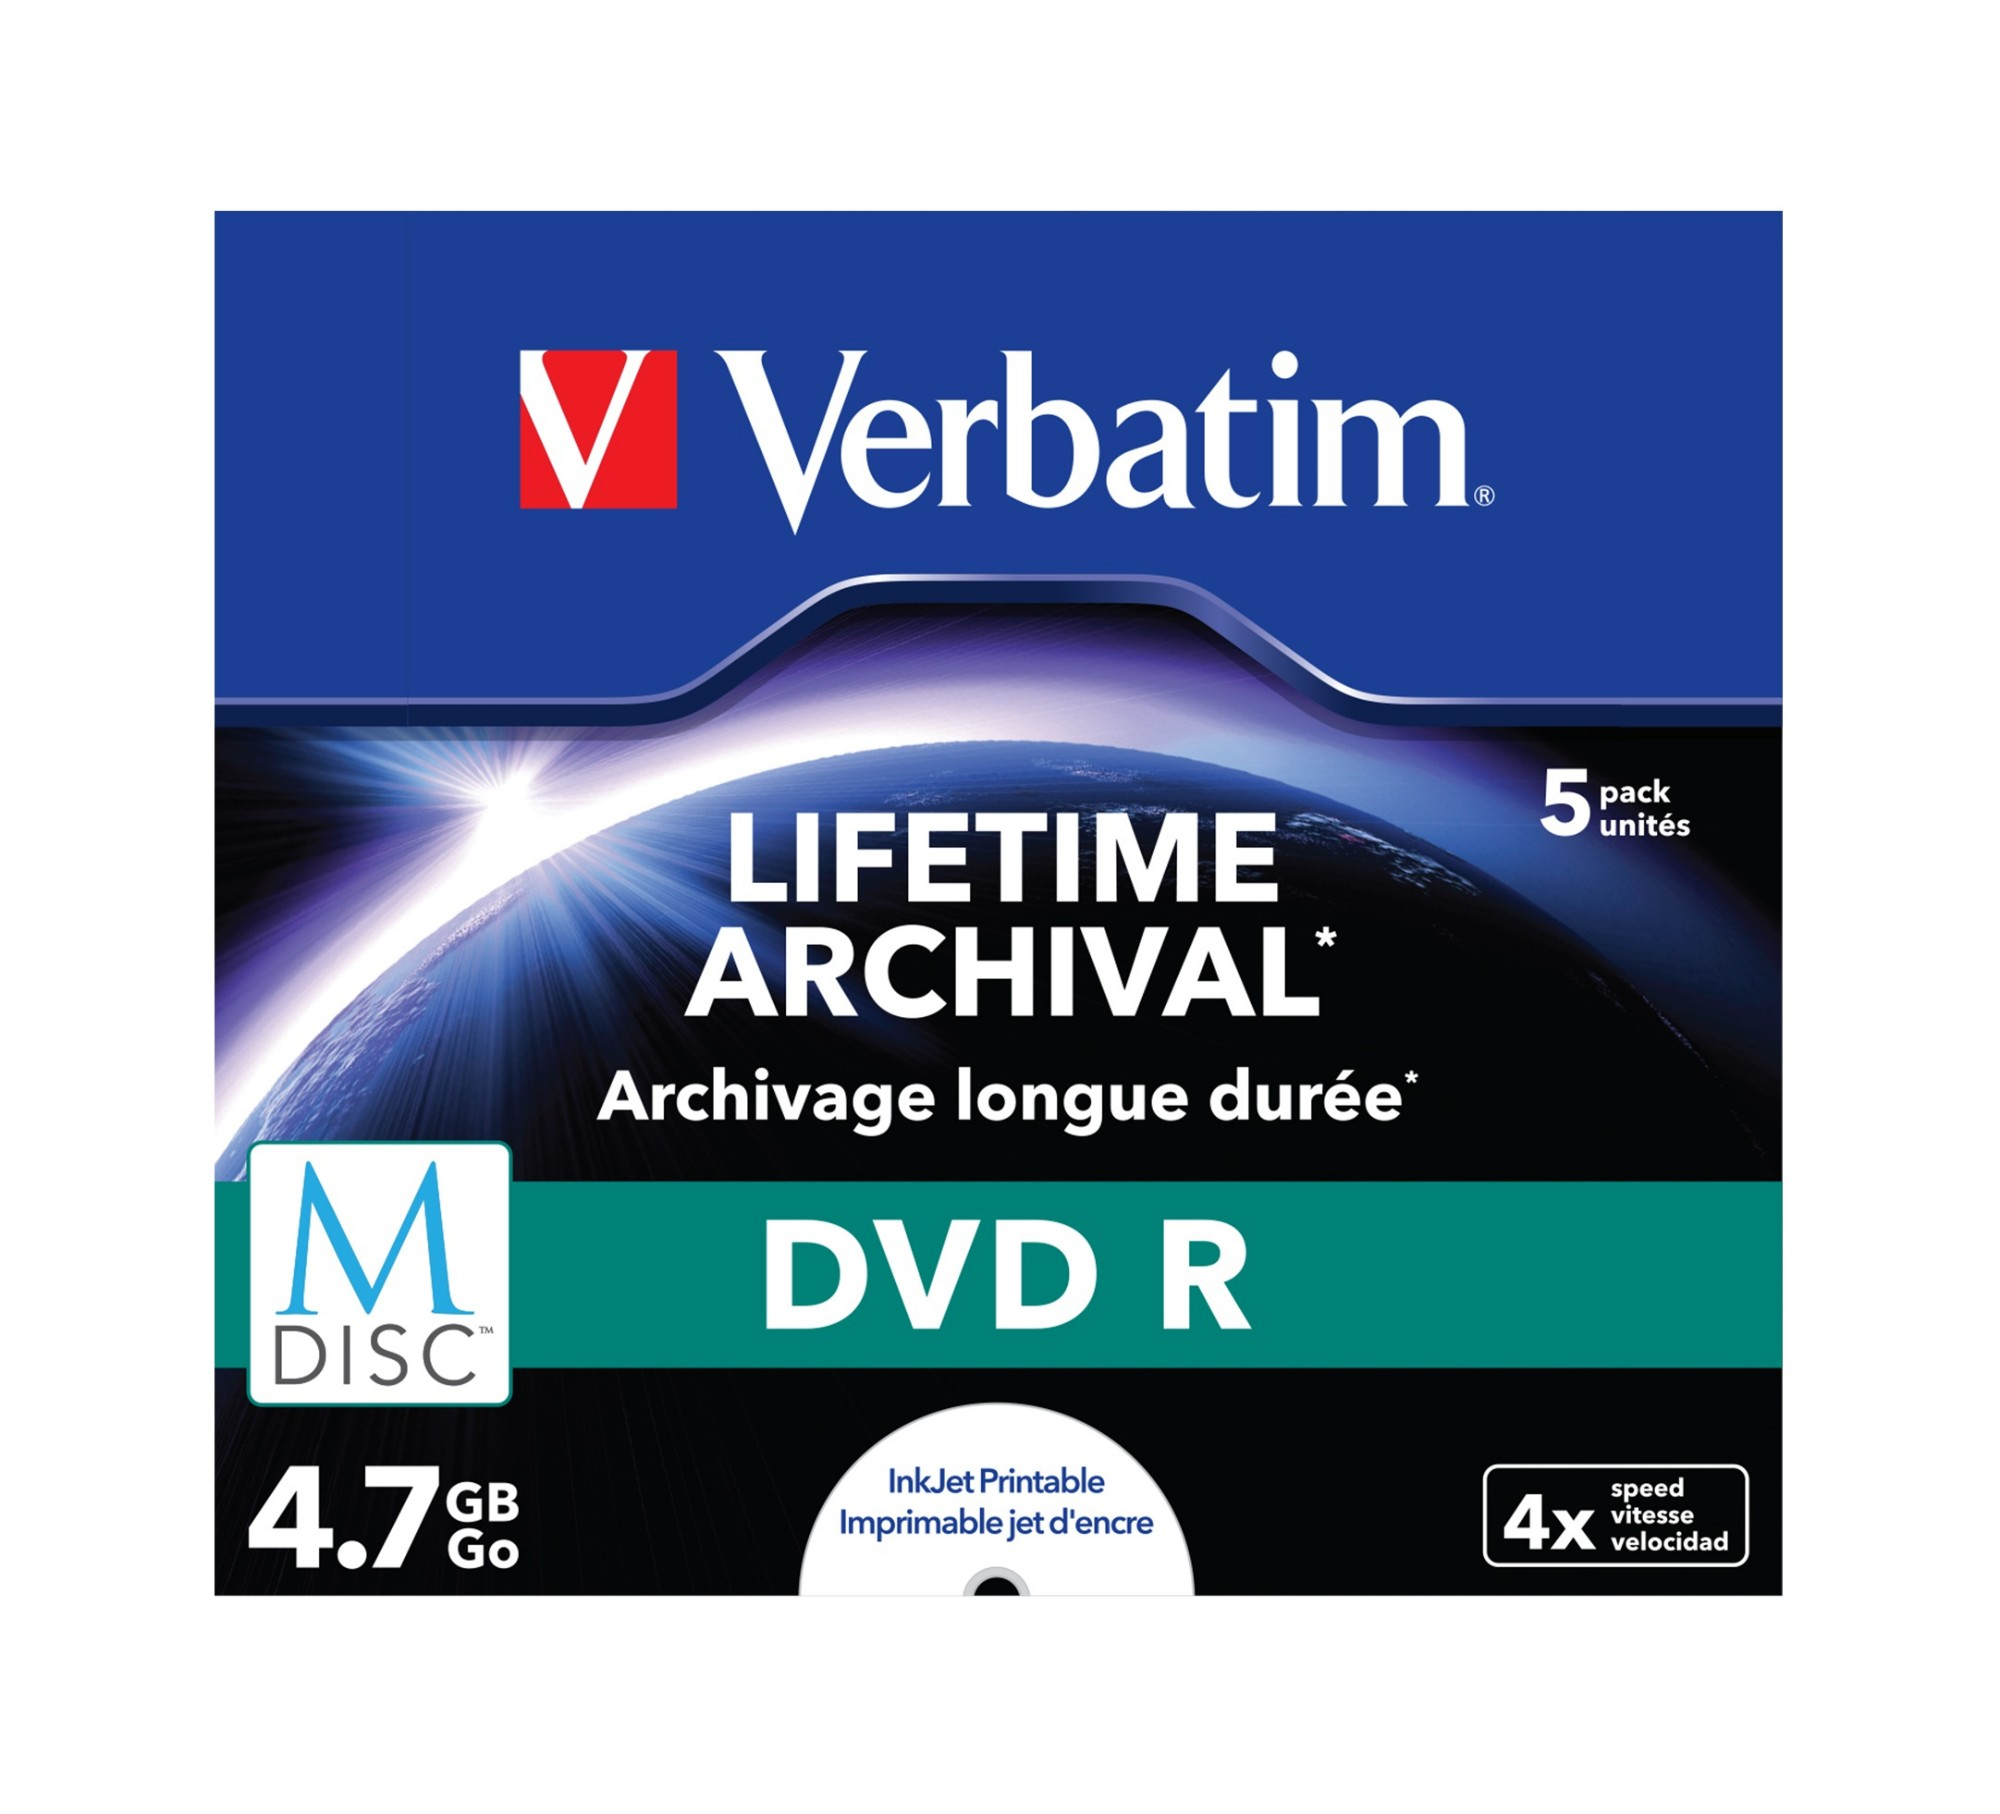 Verbatim M-Disc DVD R 4.7GB 5pc(s)